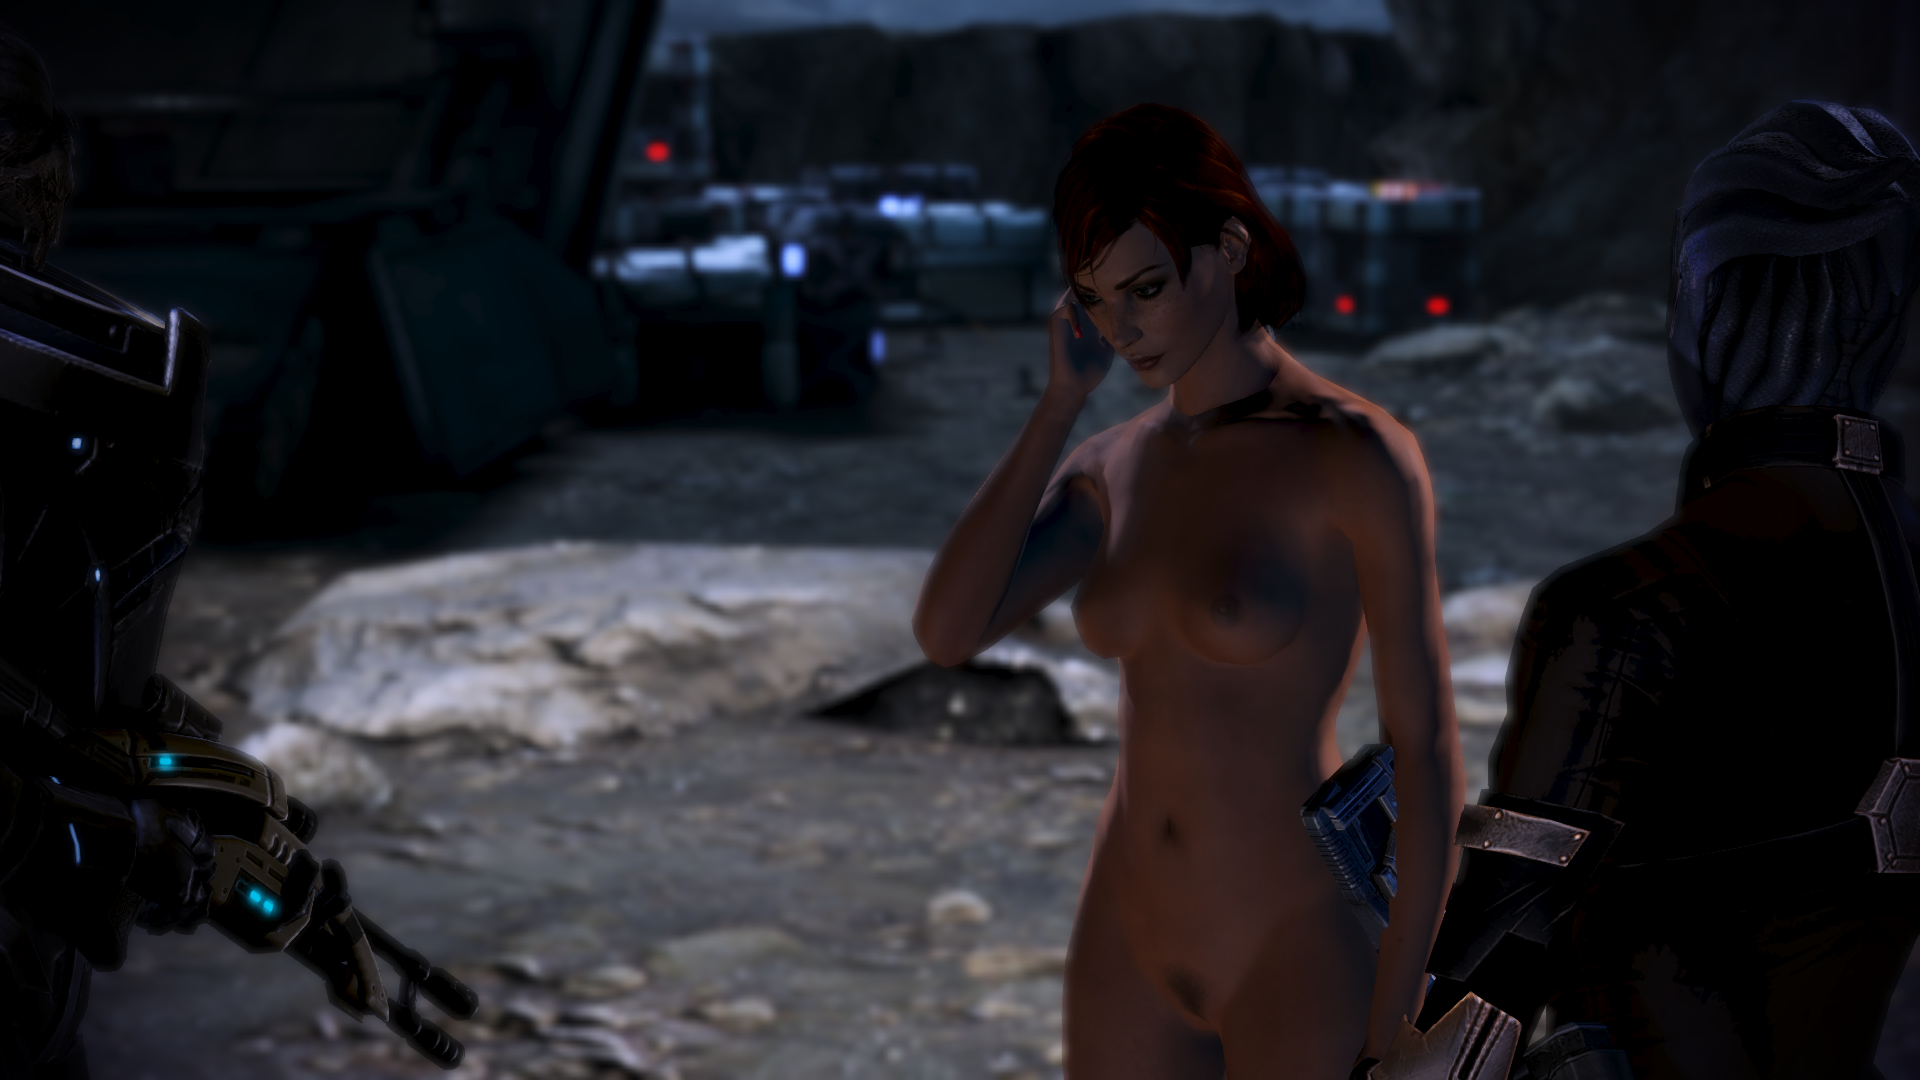 Mass effect1 nude mod hentai download